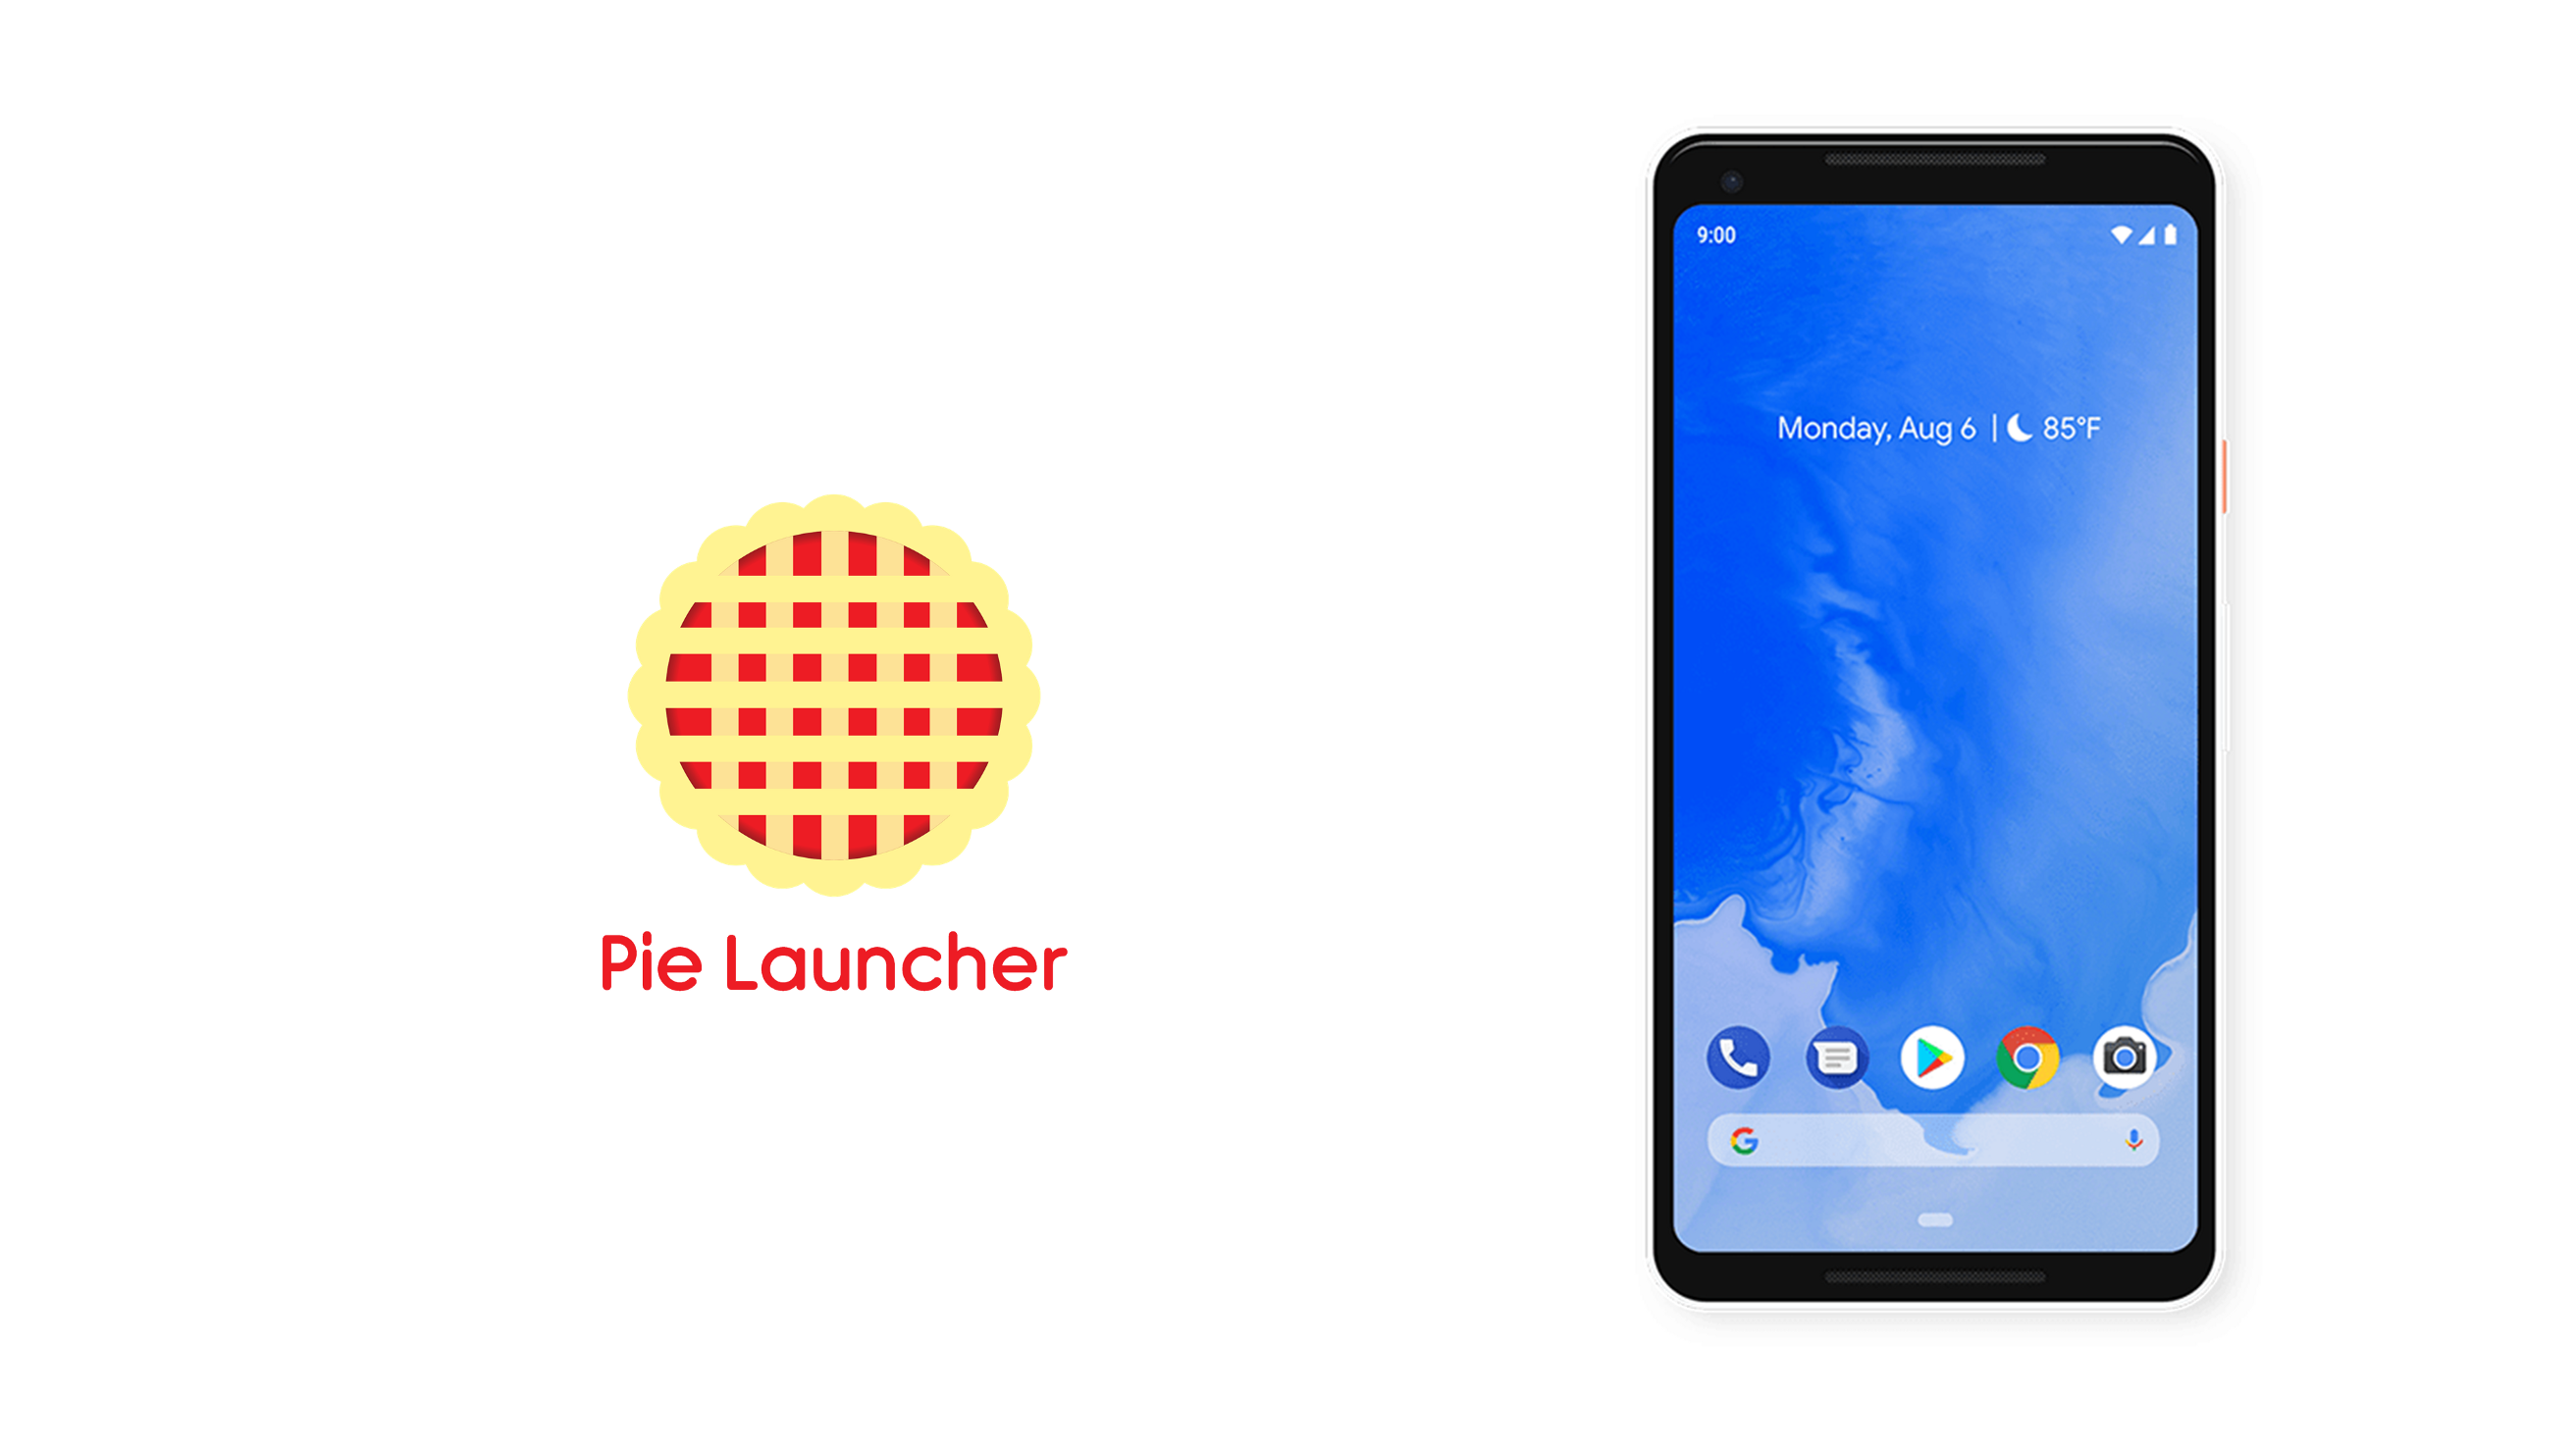 The world's first Android 9 Pie Launcher! - AOSP STUDIO LLC - Medium